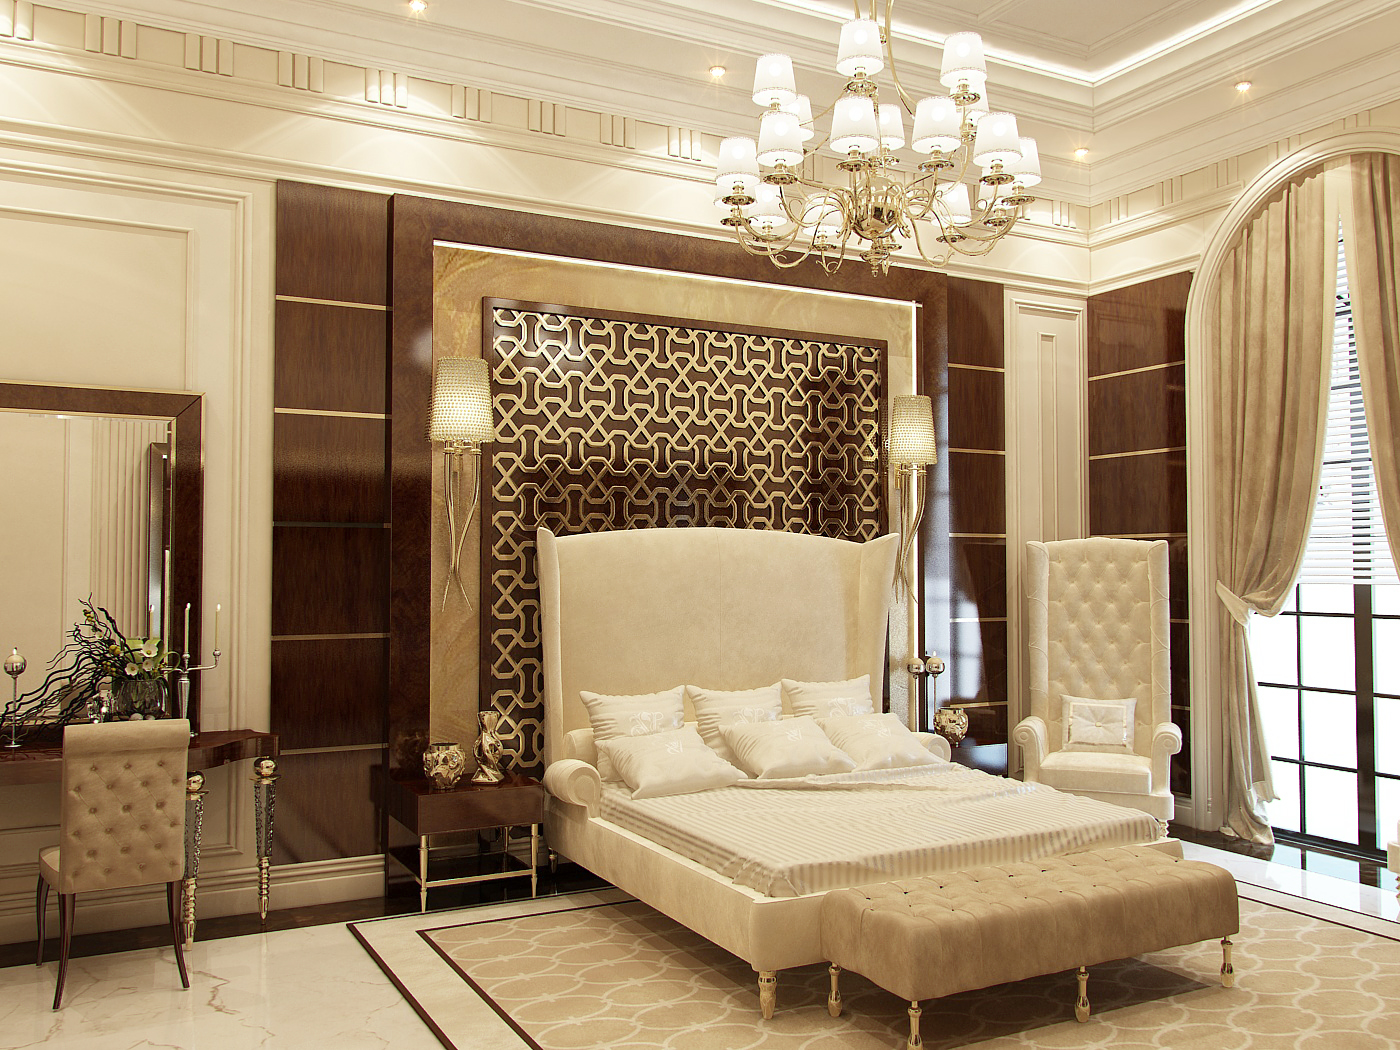 Luxury antonovich design uae interior design dubai from luxury antonovich design Bathroom design jobs dubai